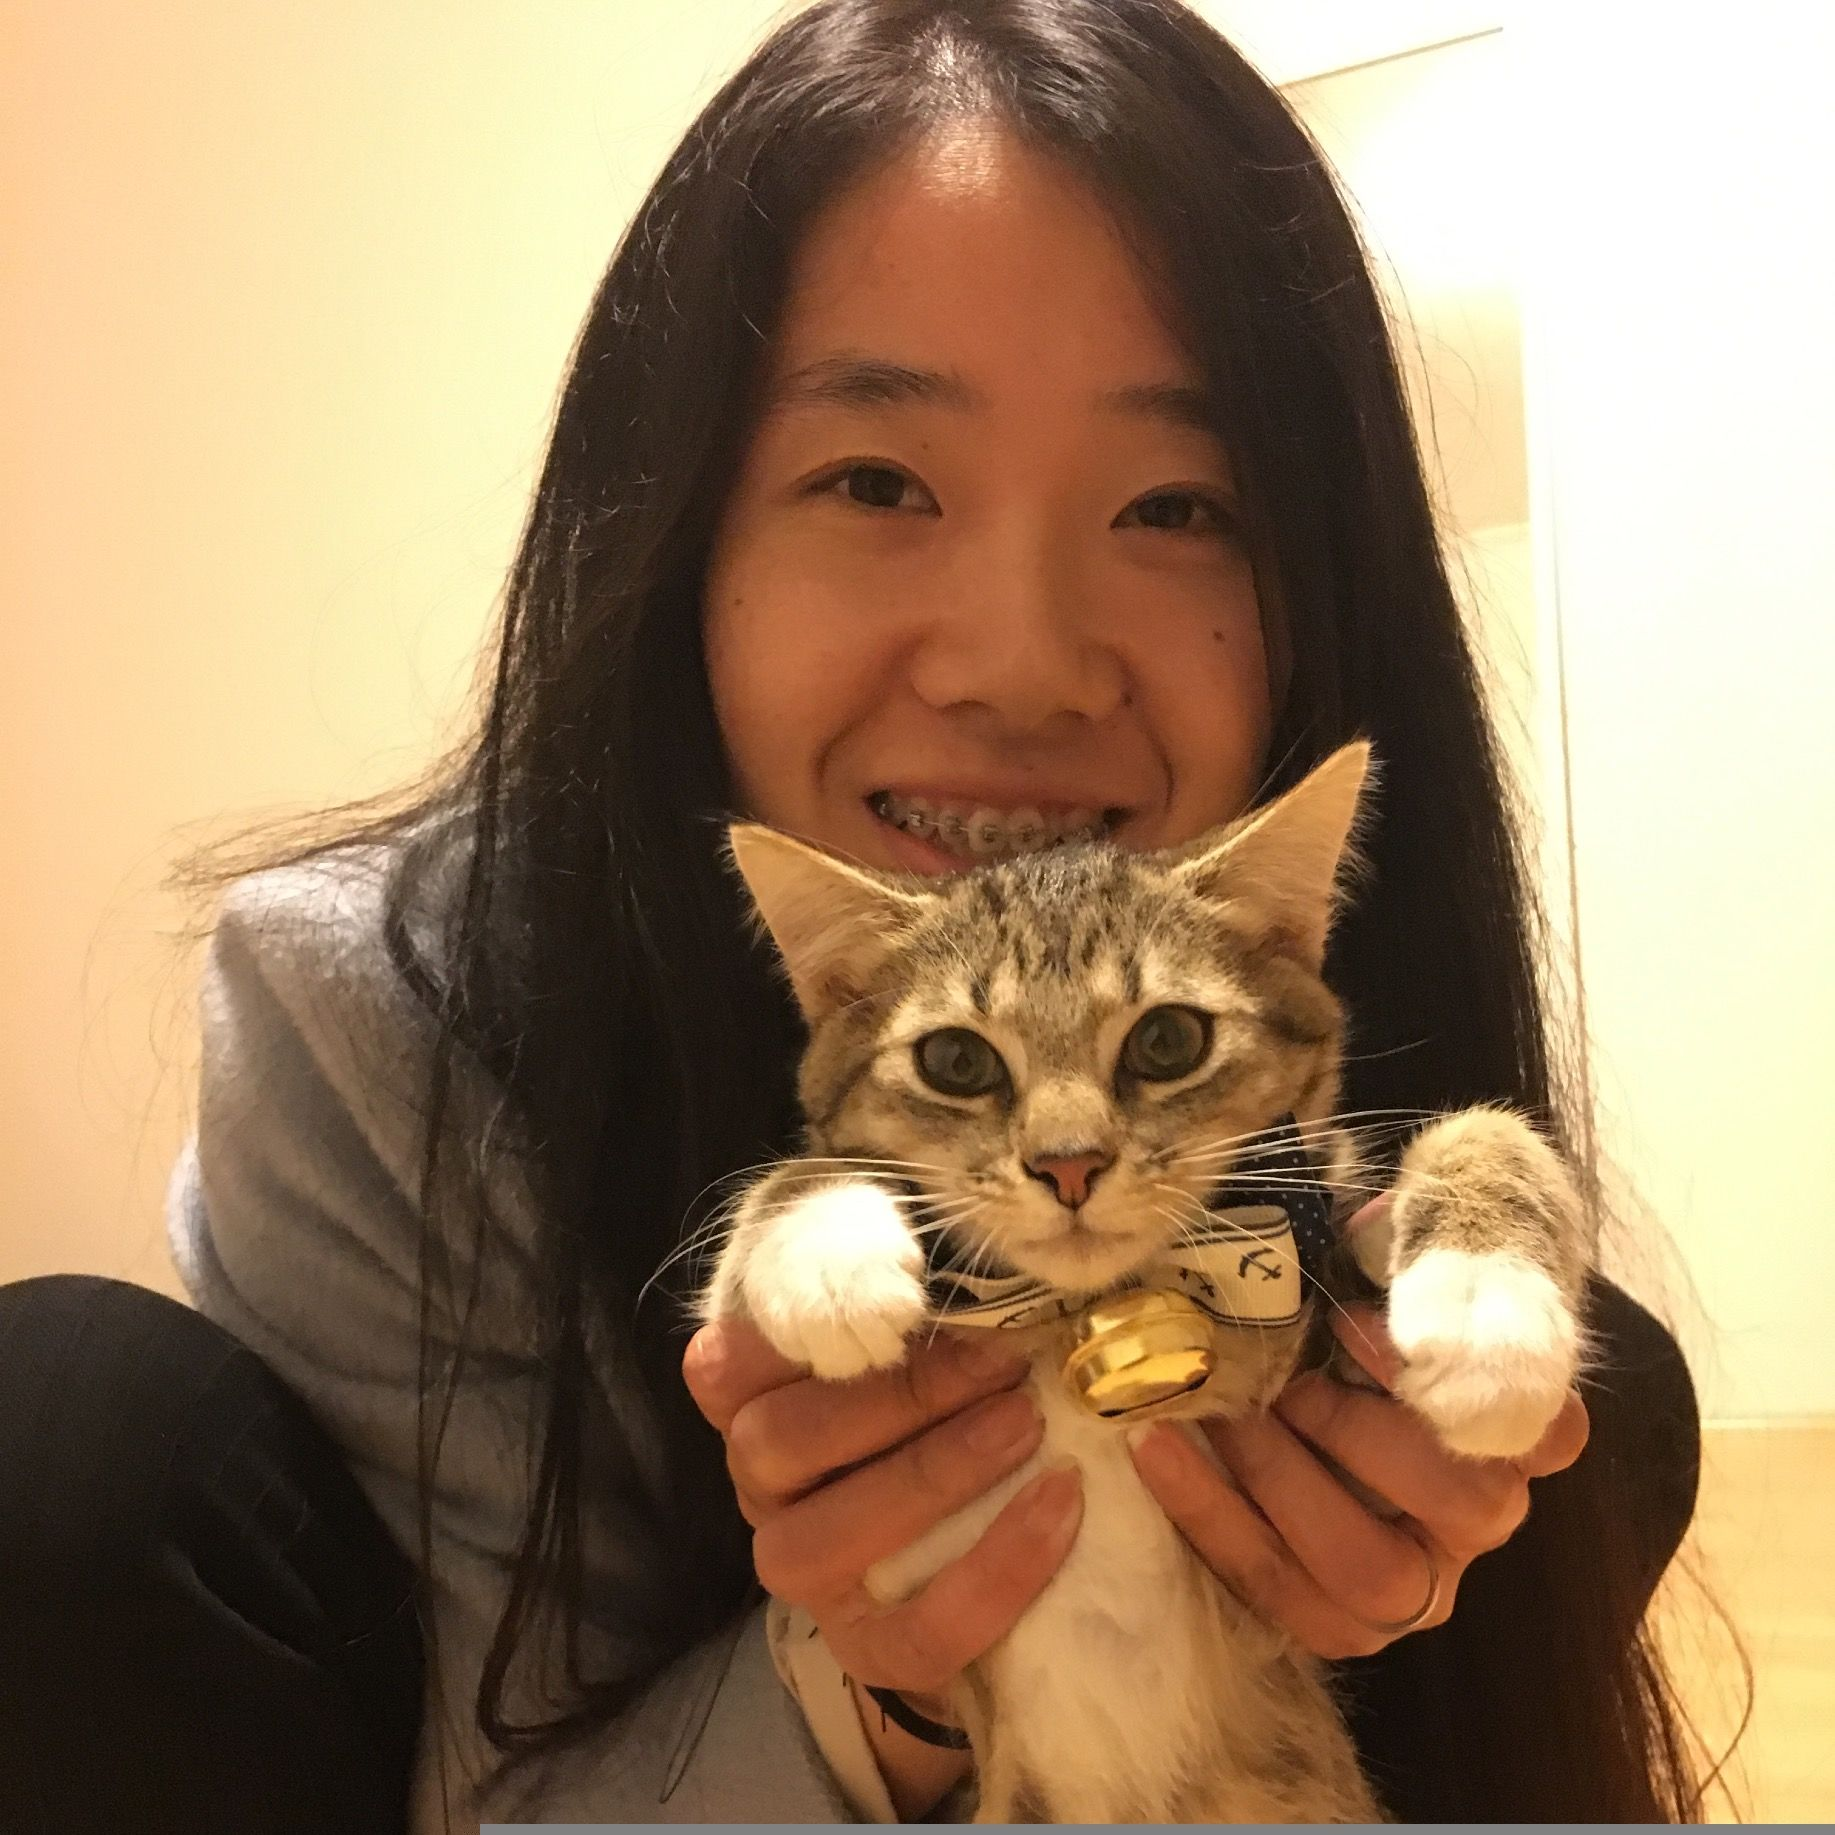 Cat lover in western Sydney. 12 years experience in raising kittens & cats.